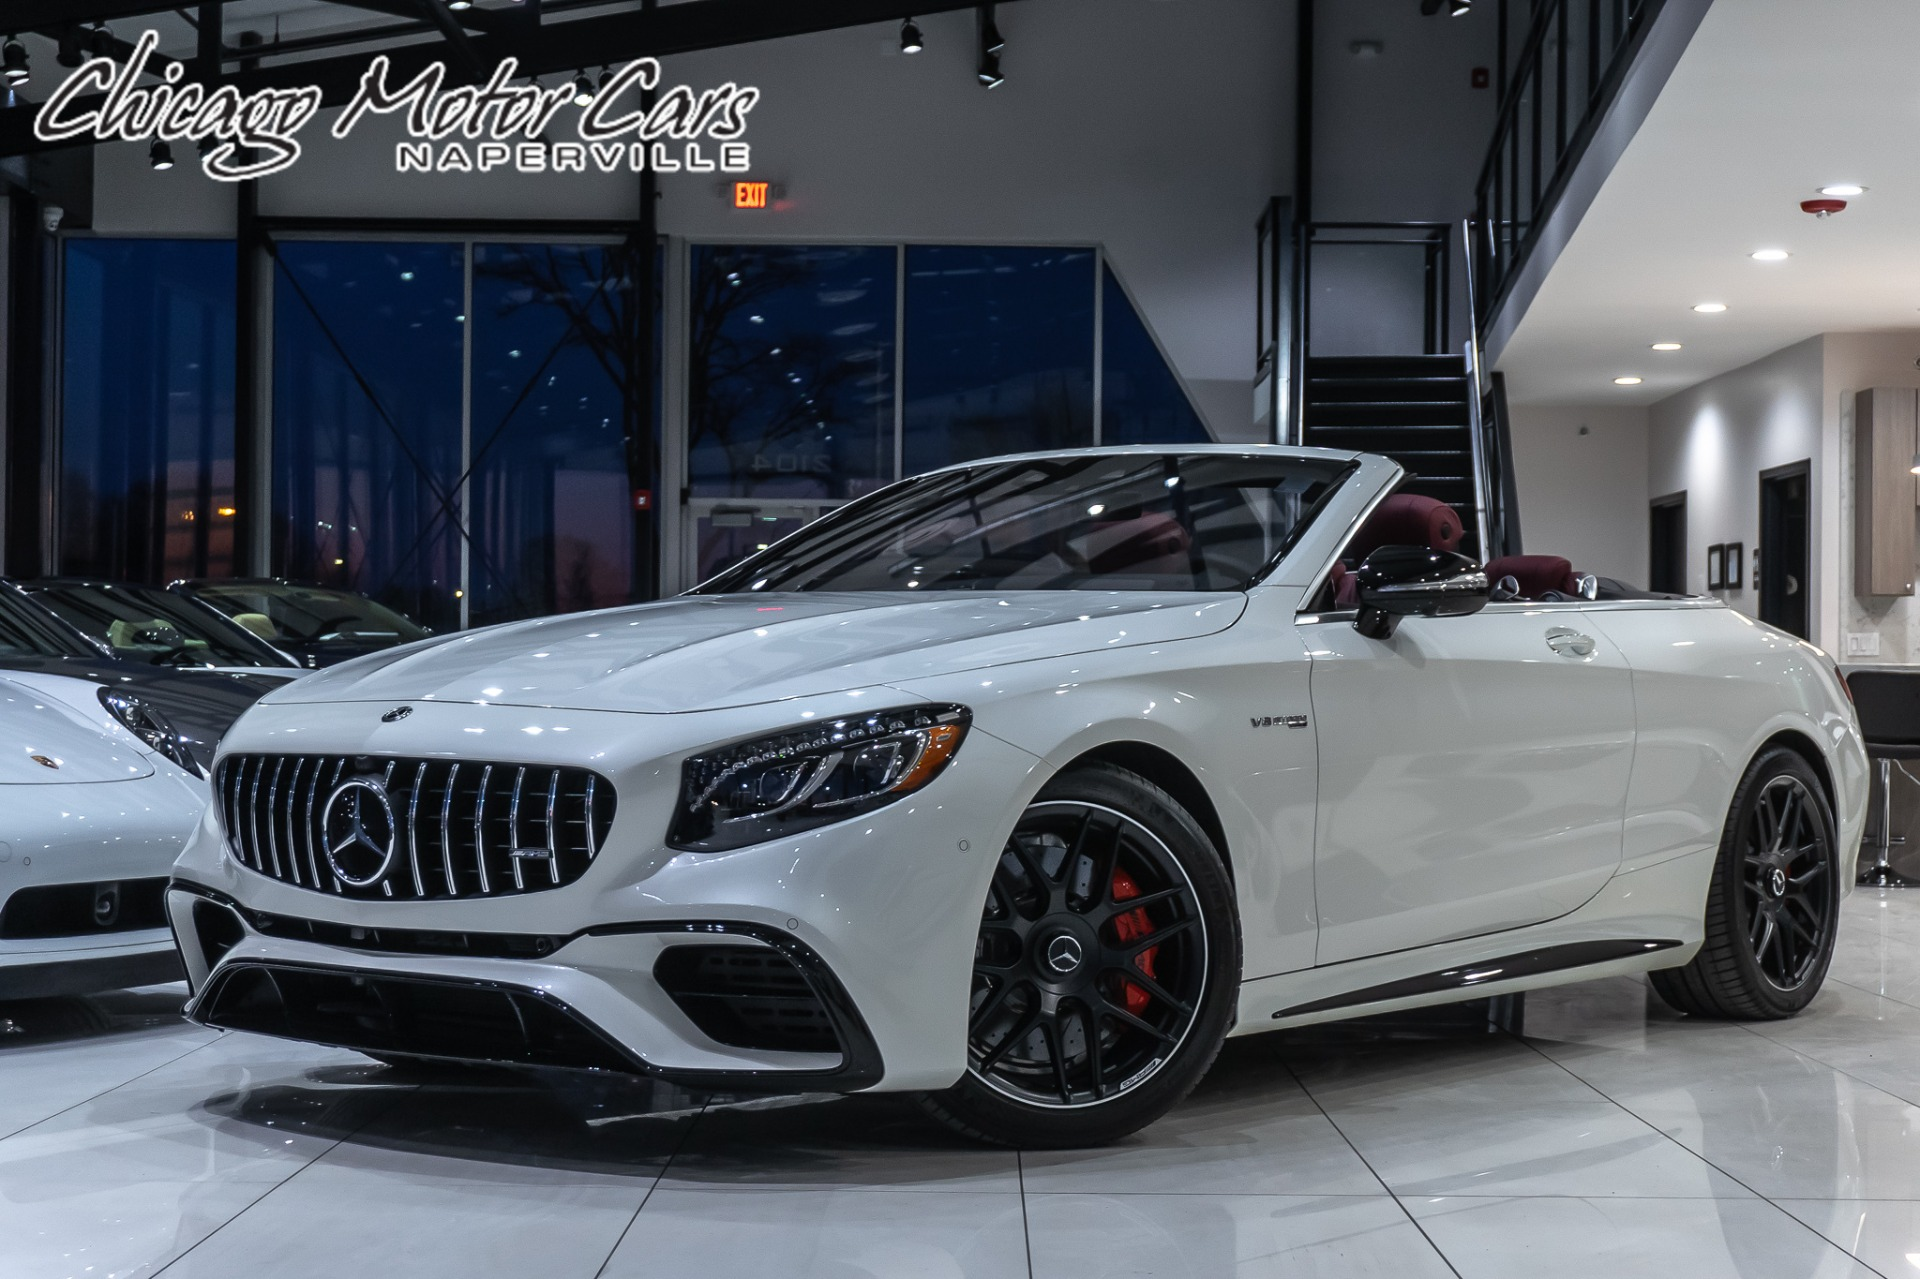 2019 mercedes benz s63 amg cabriolet 4matic exclusive pkg amg night vision pkg msrp 197k only 183 miles inventory find a luxury car